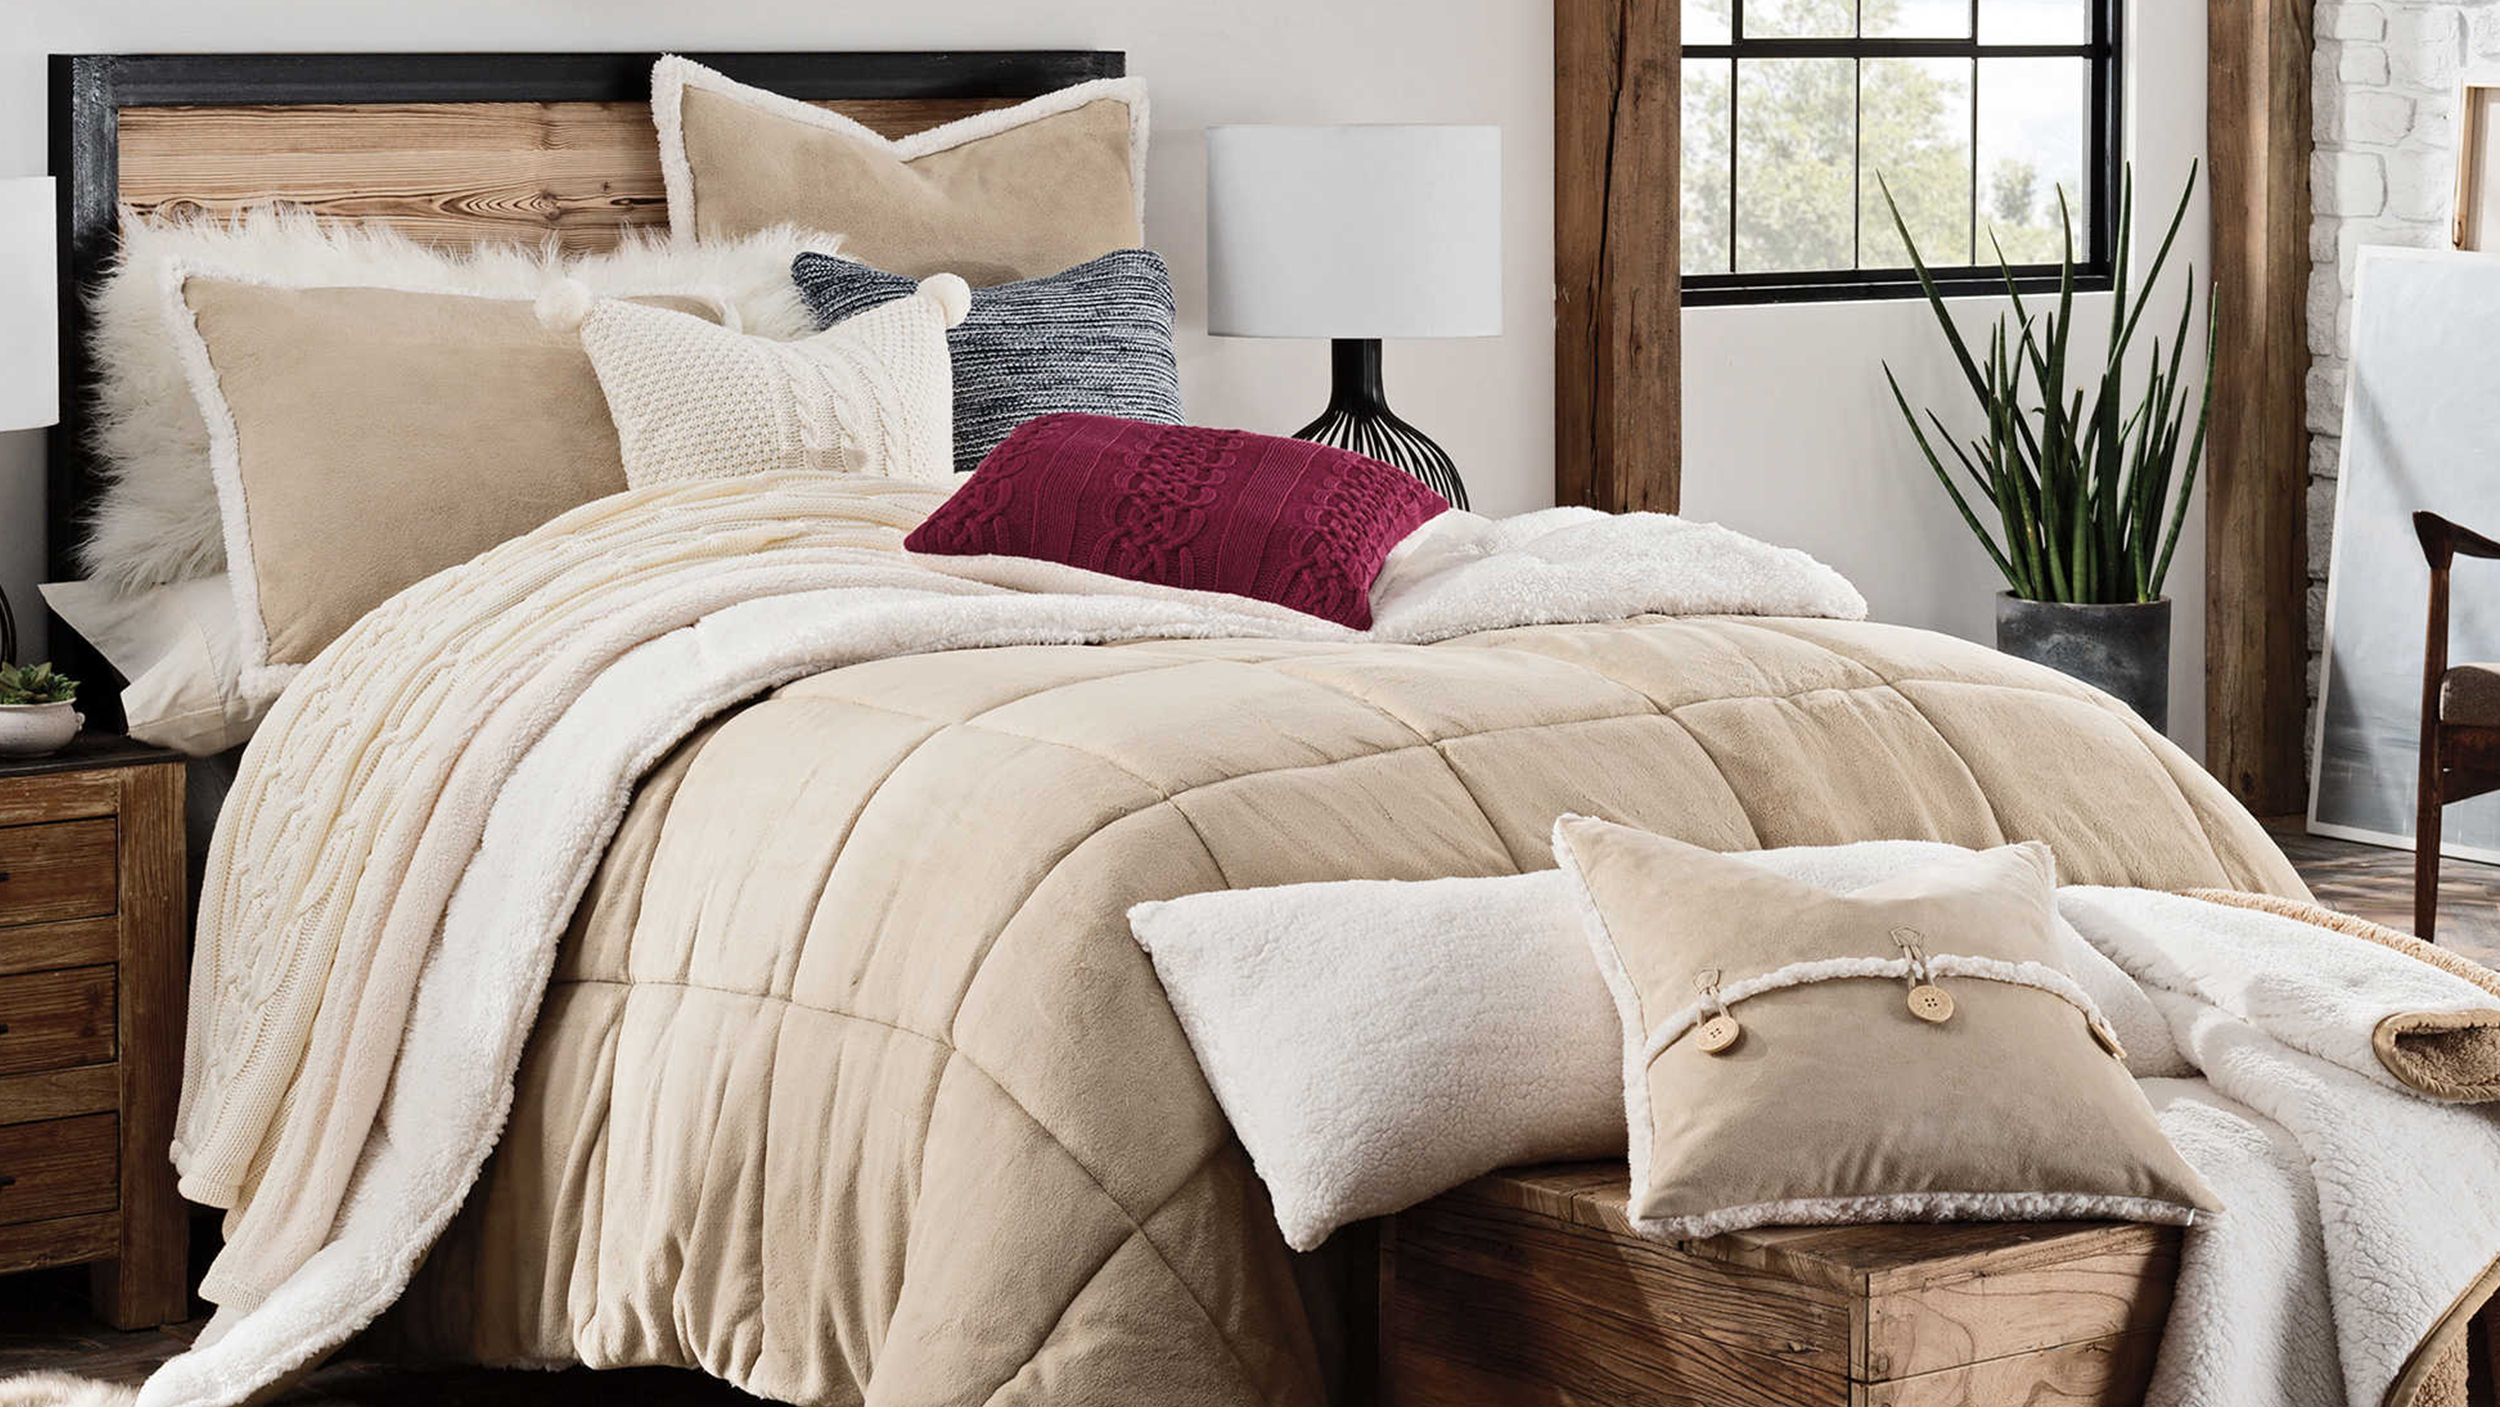 Bed Bath Beyond Recalls 175 000 Ugg Comforters For Mold Exposure